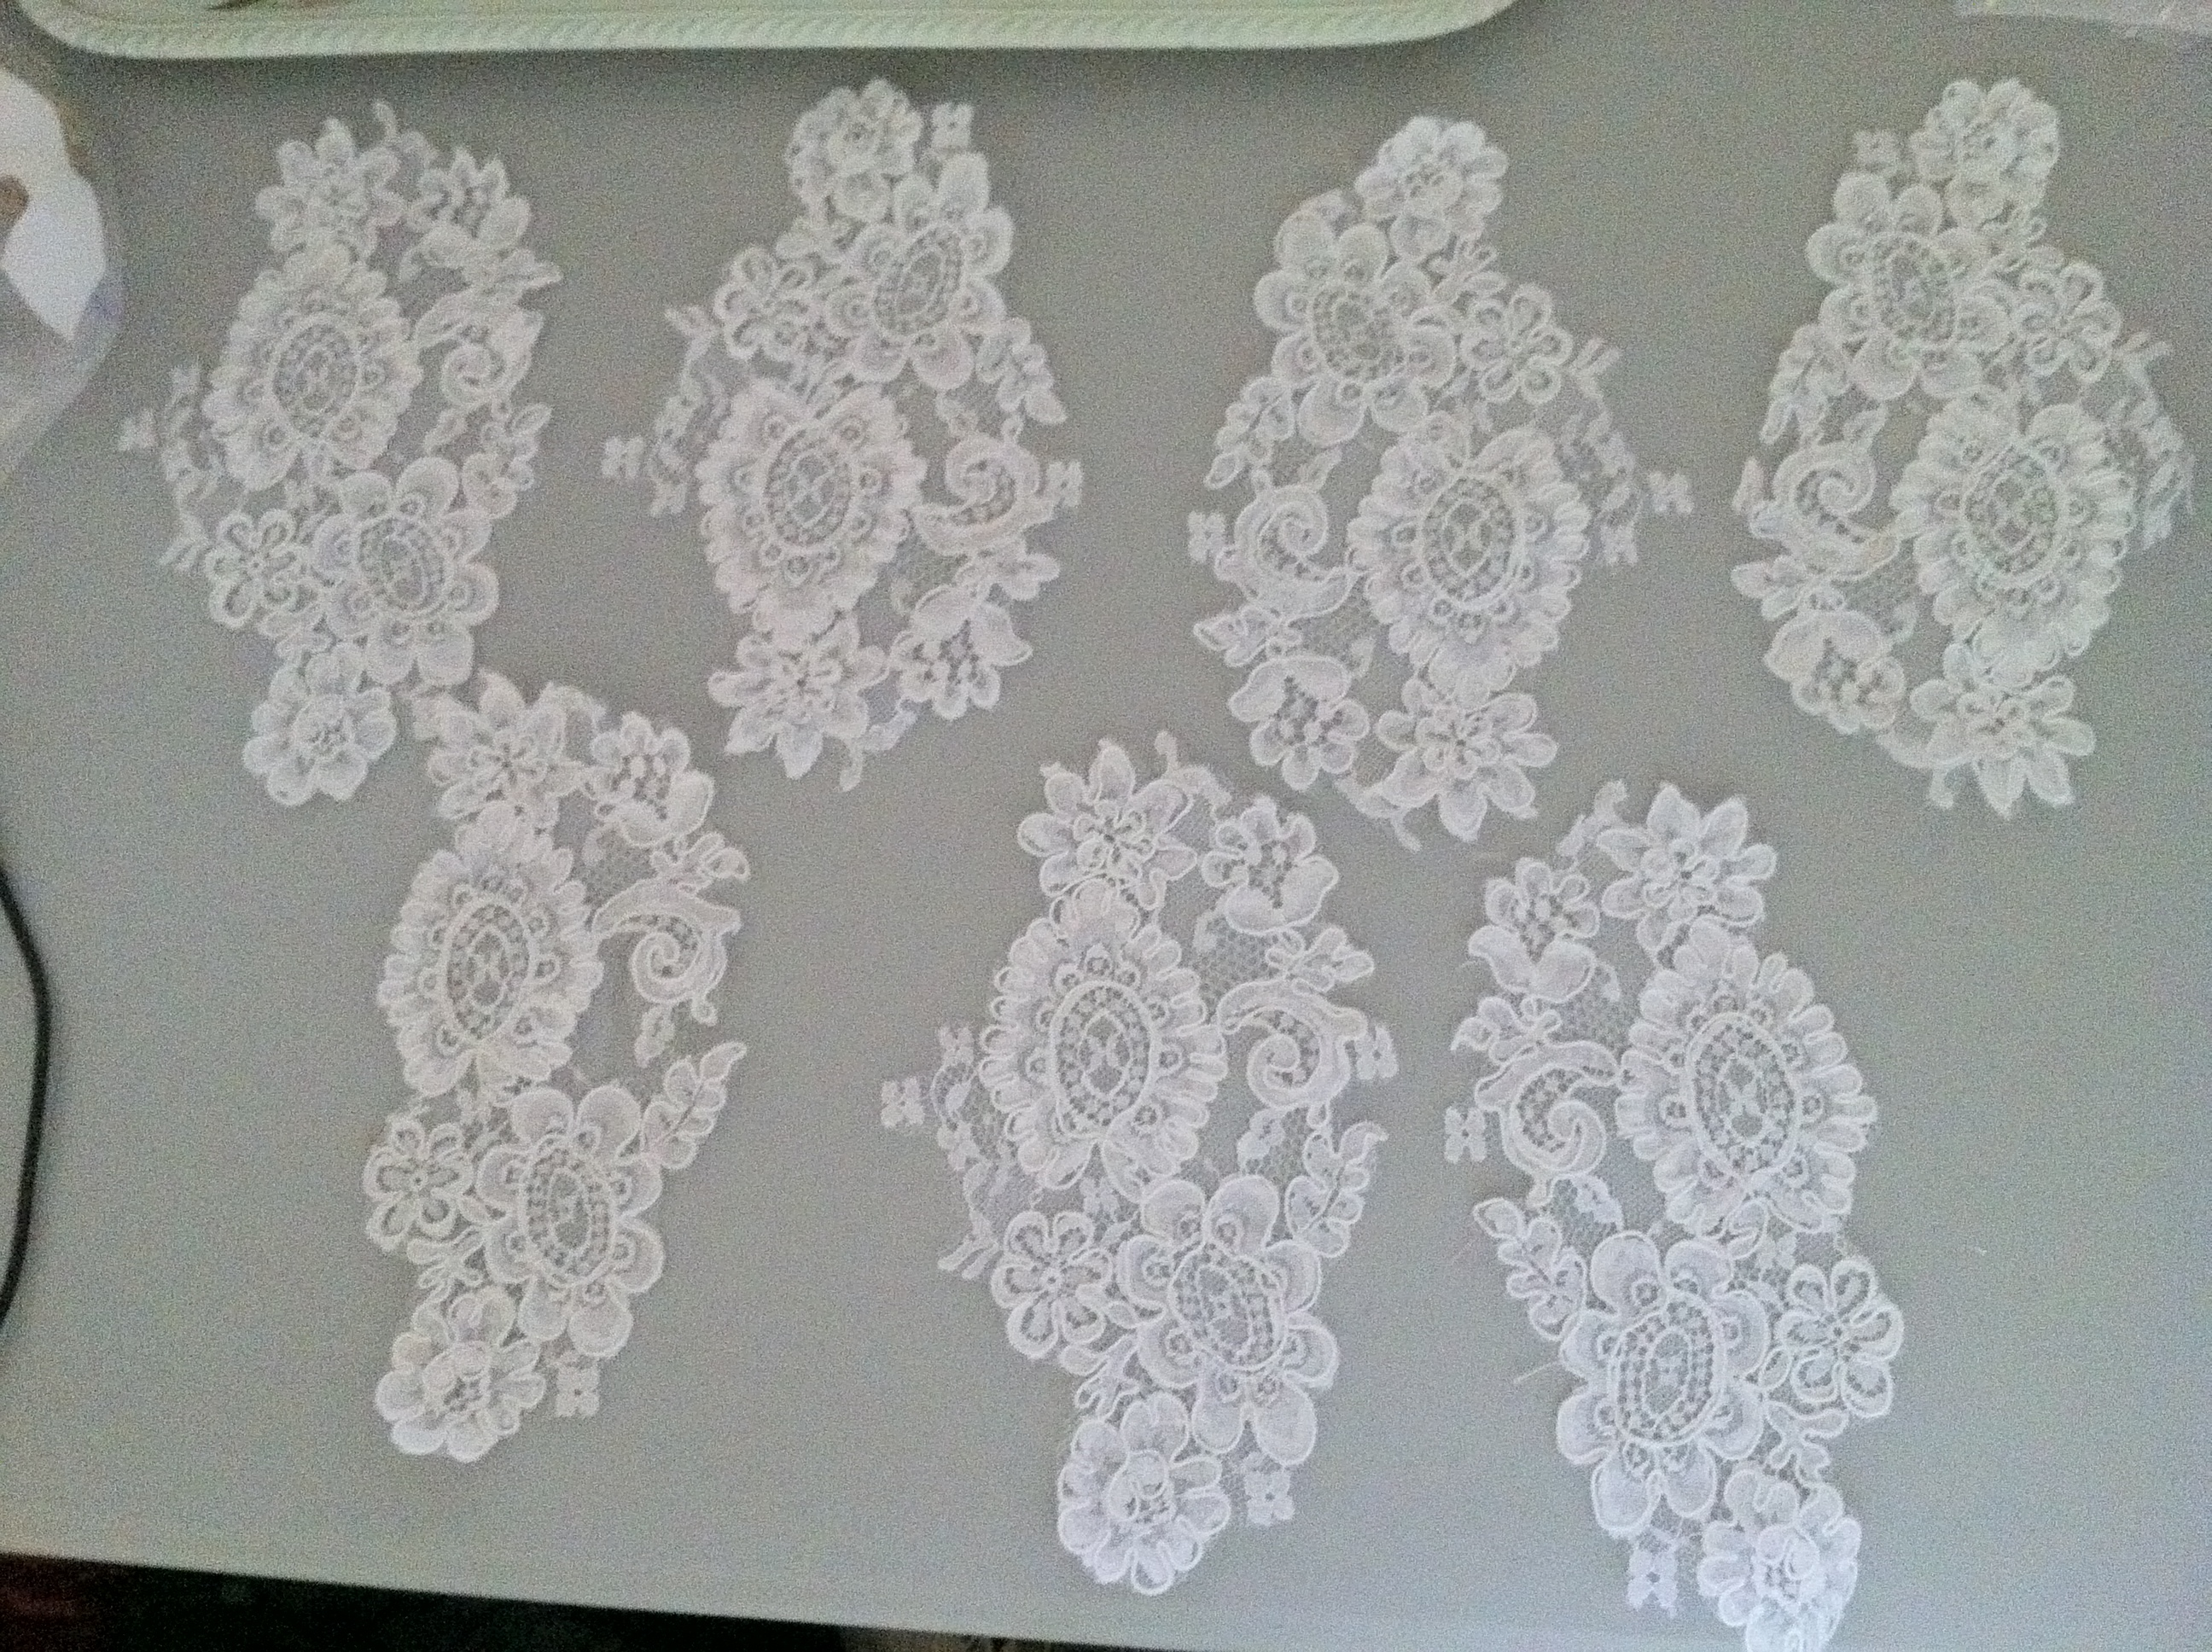 Flowers & Decor, Decor, Lace, Burlap, Place, Mat, Sections